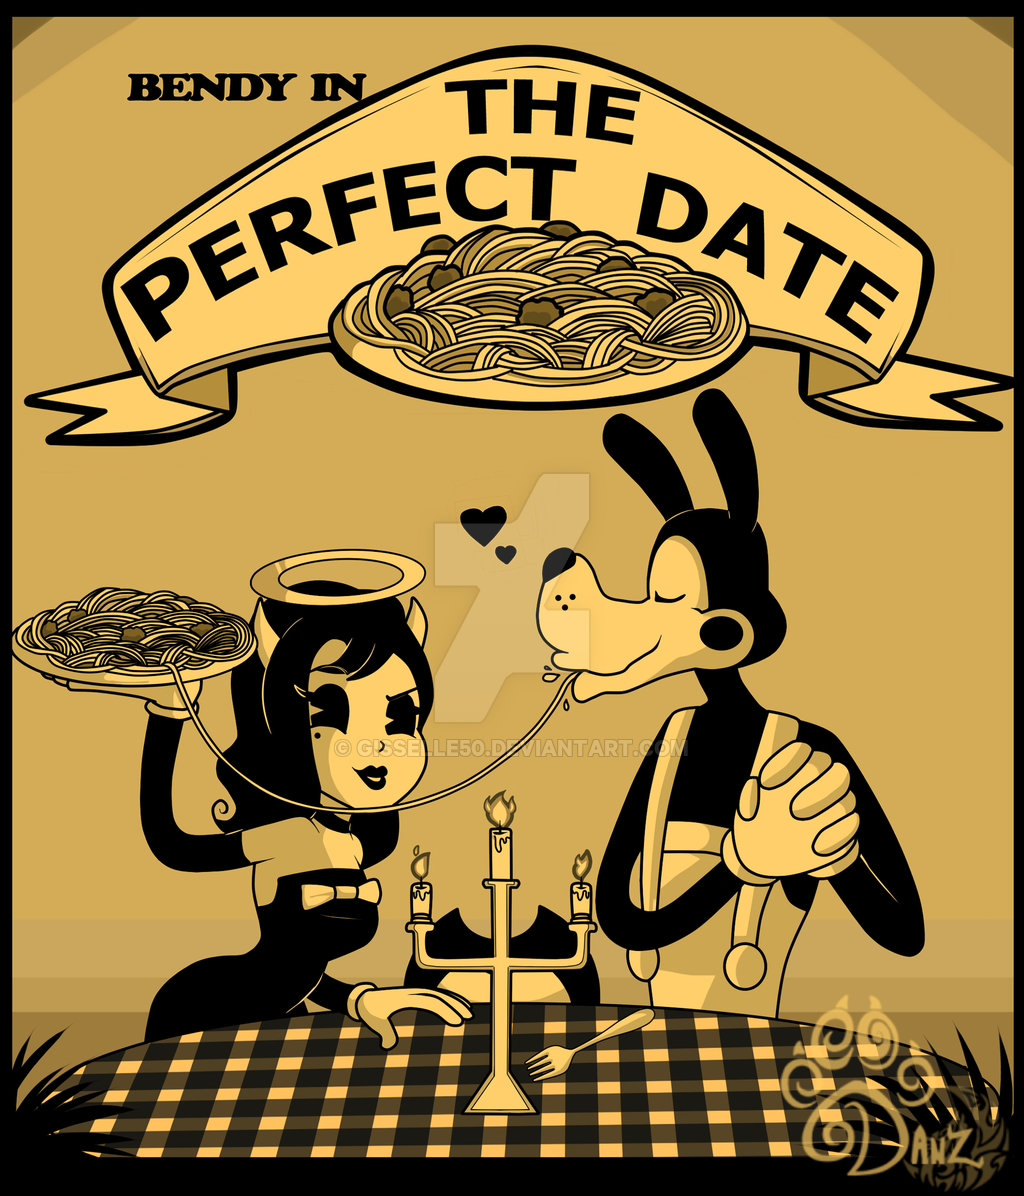 Bendy In| The Perfect Date| by gisselle50 | Bendy and the